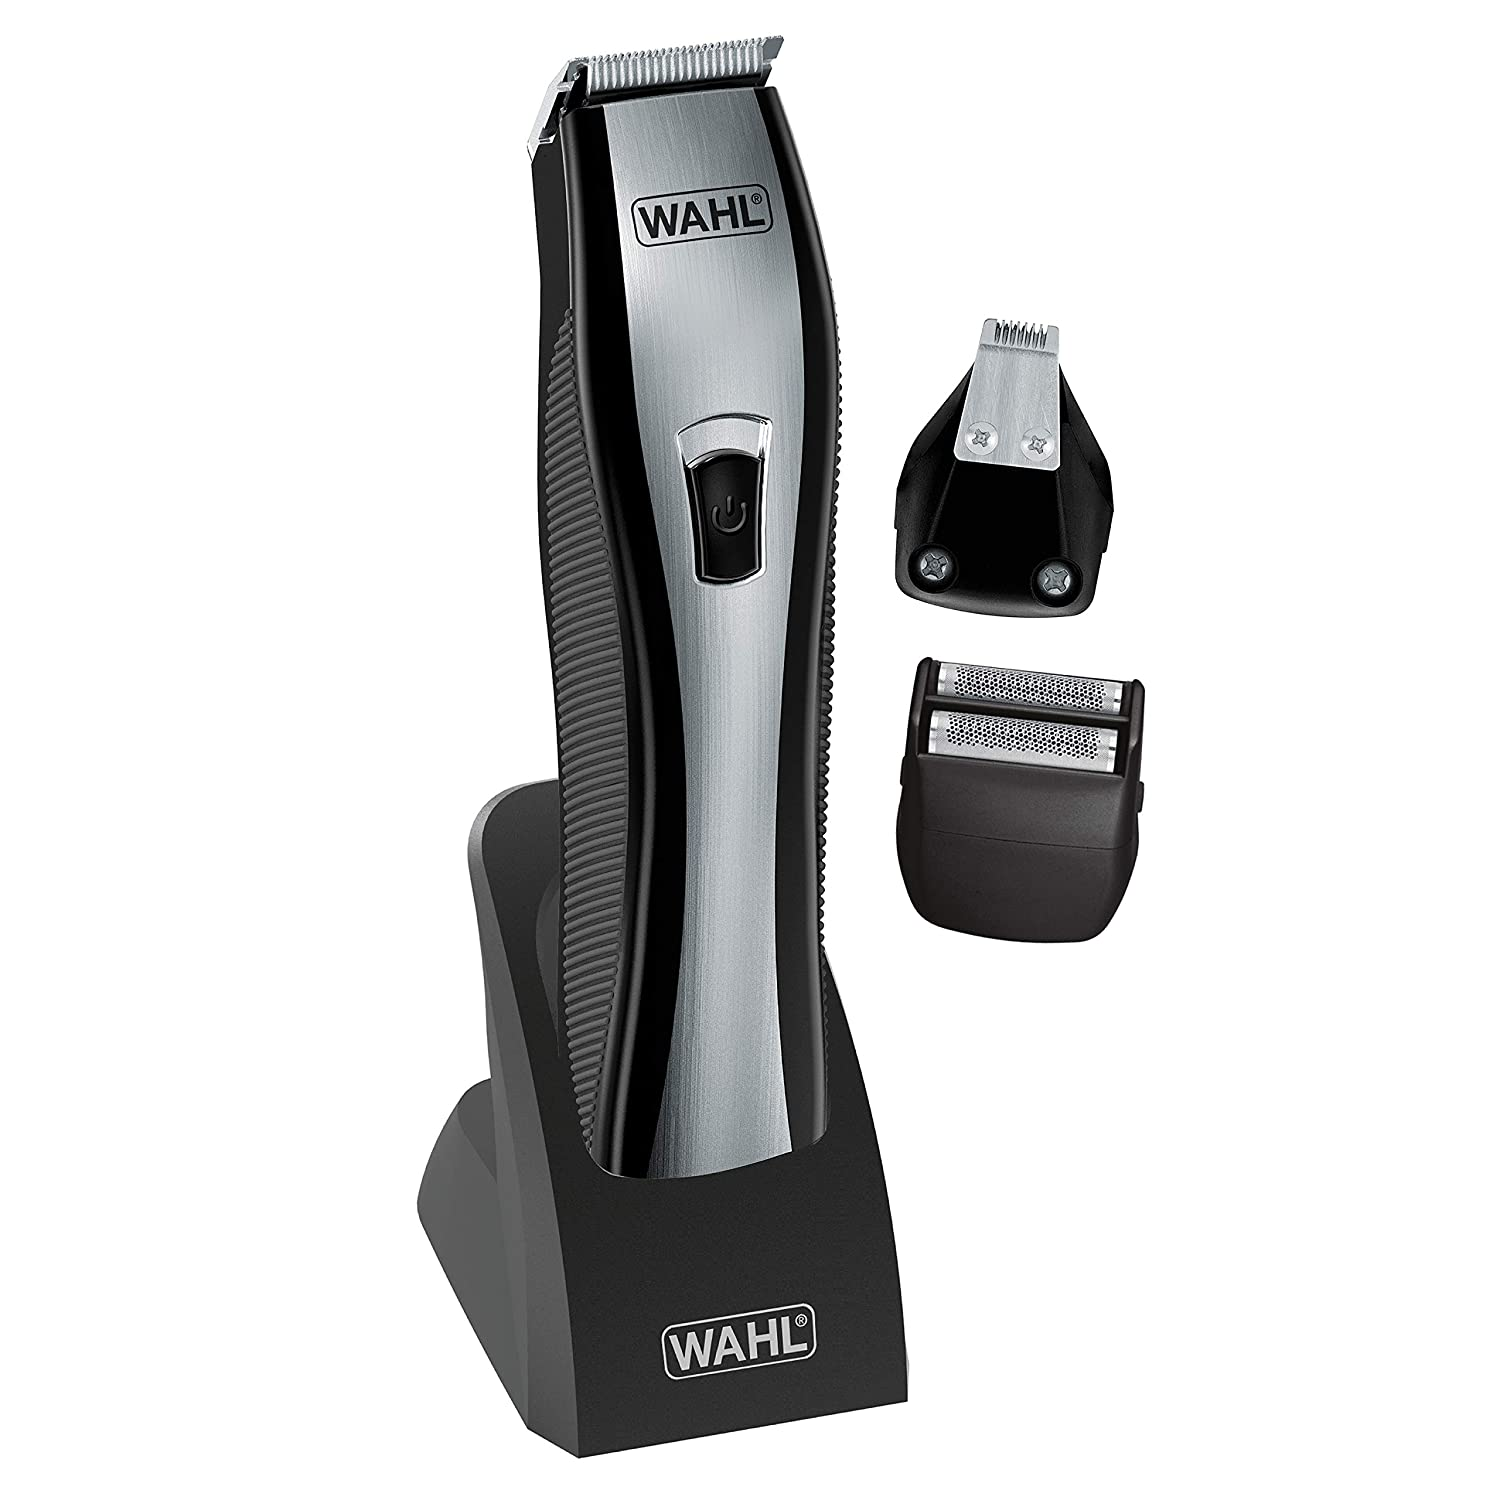 Wahl Lithium Ion Integrated All-in-One Trimmer #9867-300 Wahl Clipper Corp